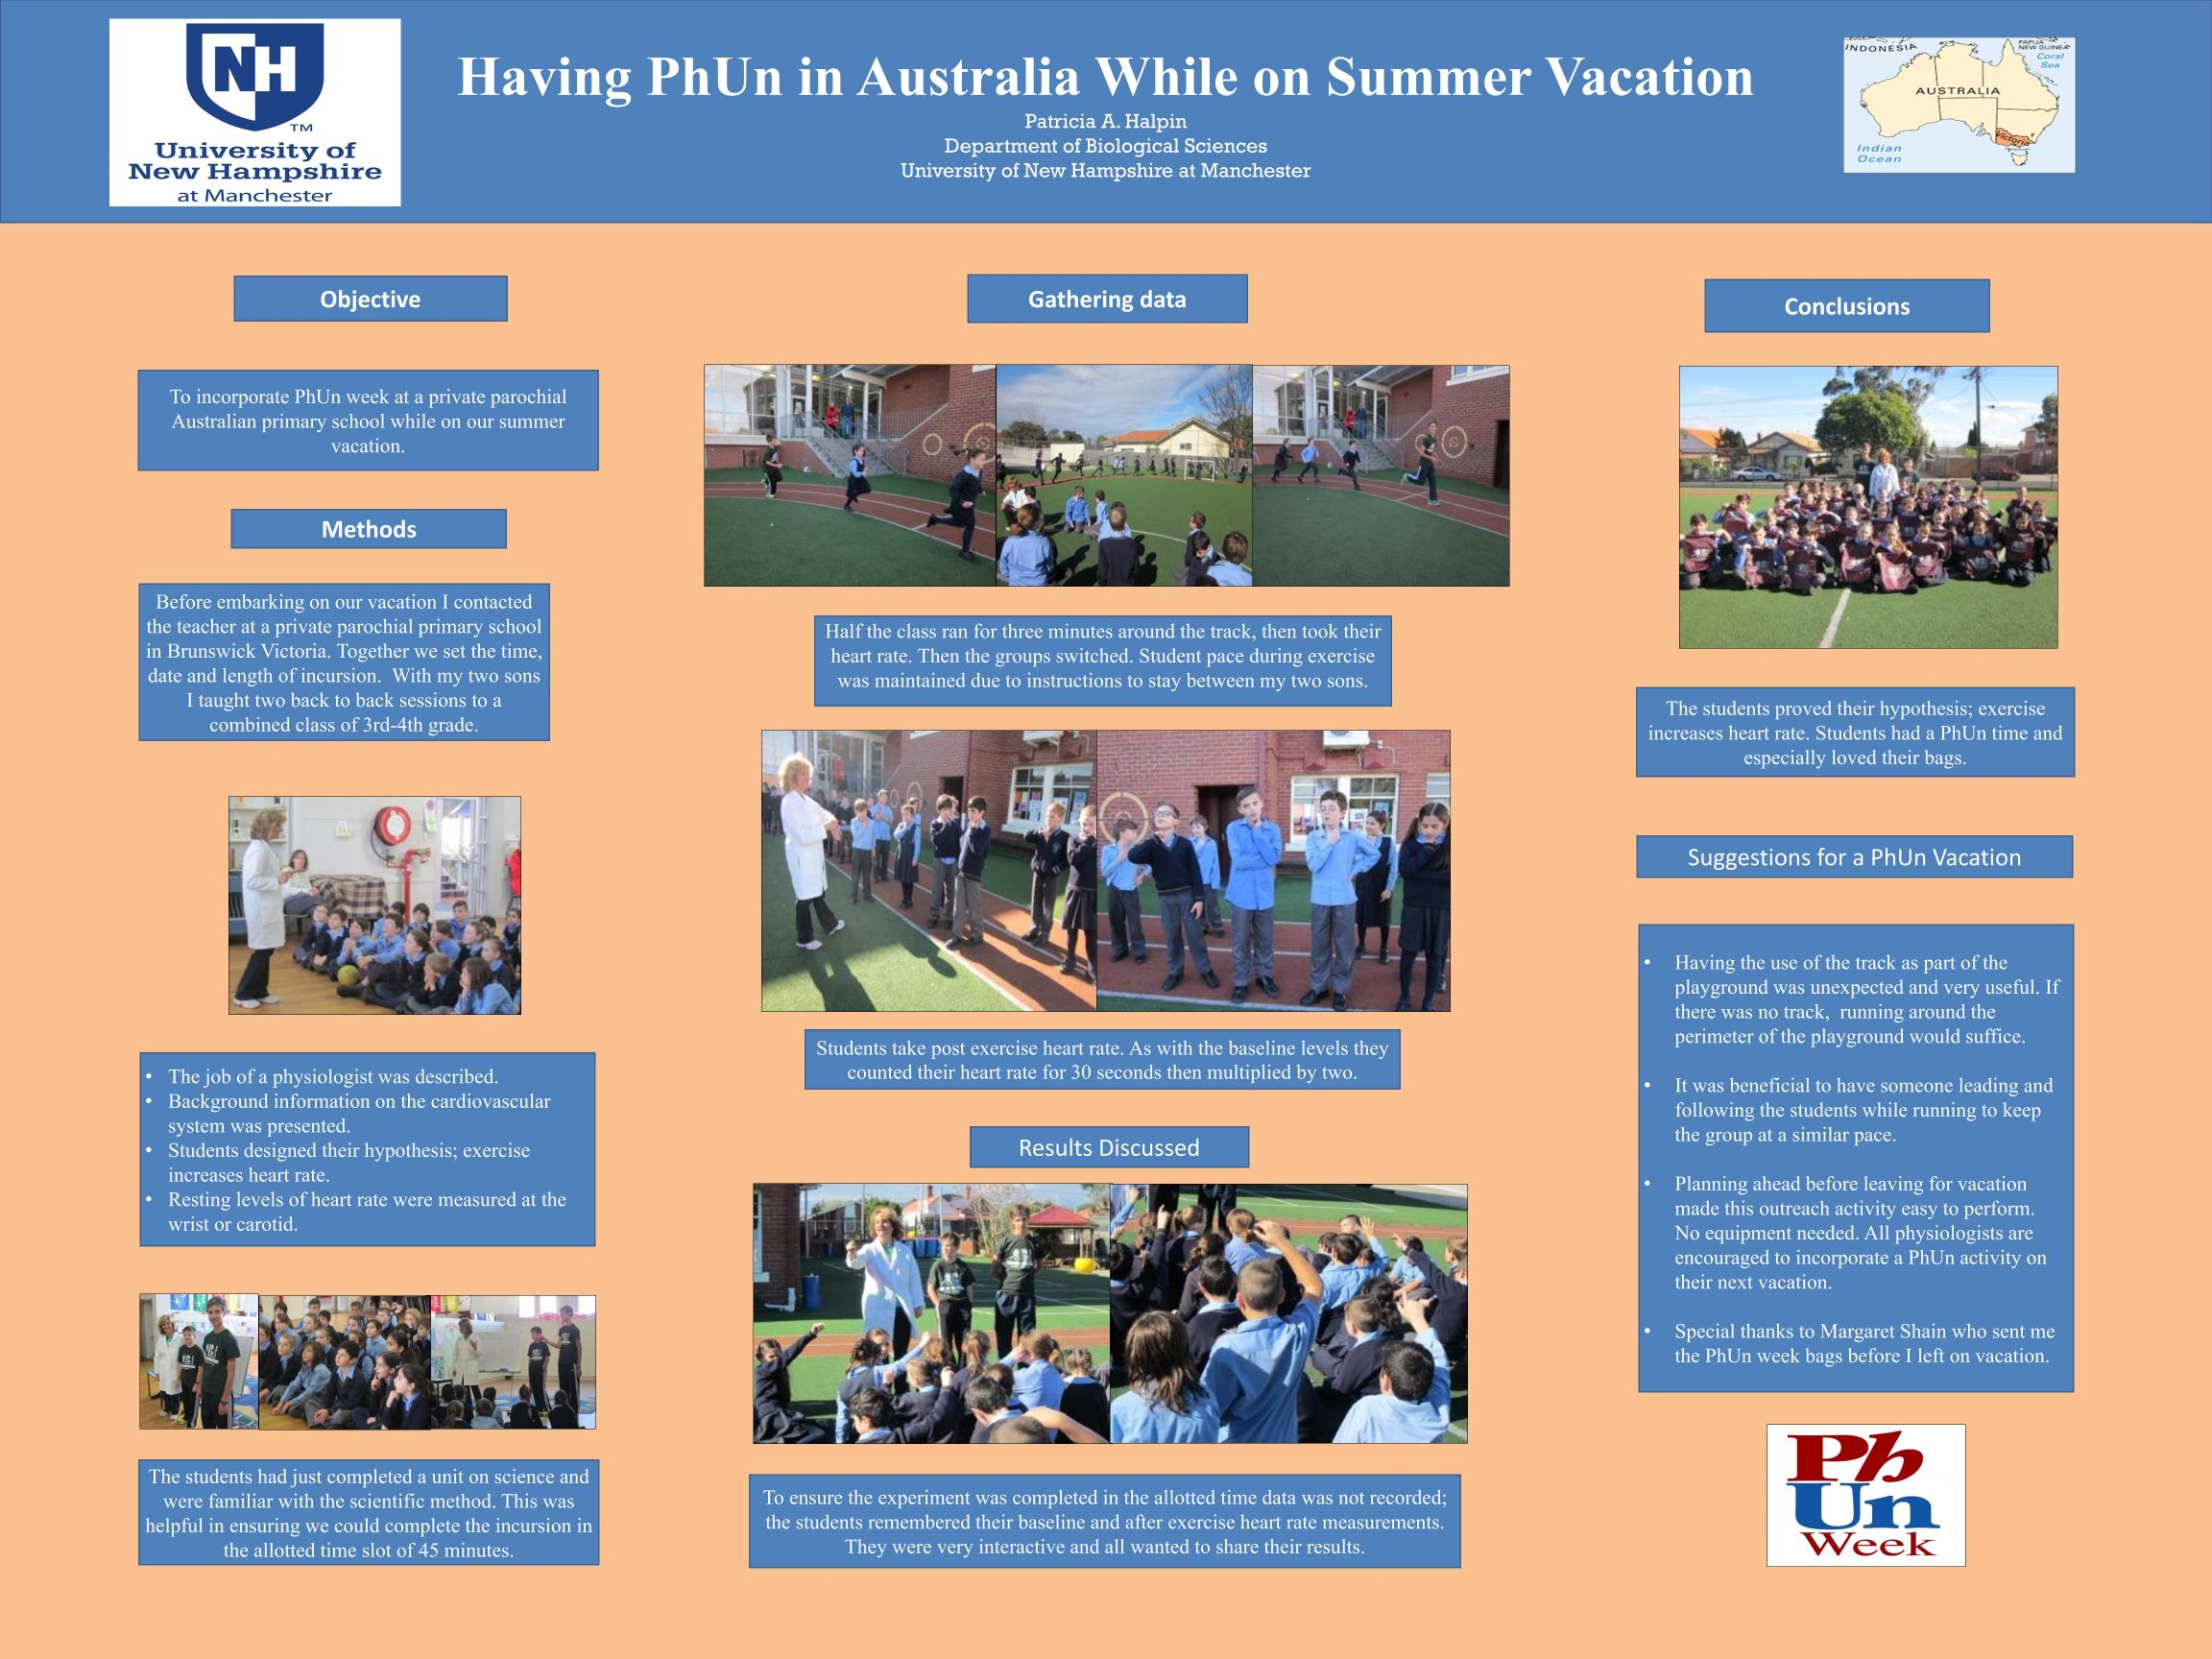 Search Results Parallel Circuit With Switch Bbc Intermediate 2 Bitesize Physics Having Phun In Australia While On Summer Vacation Week Poster Session Eb 2015 Patricia Halpin University Of New Hampshire Manchester